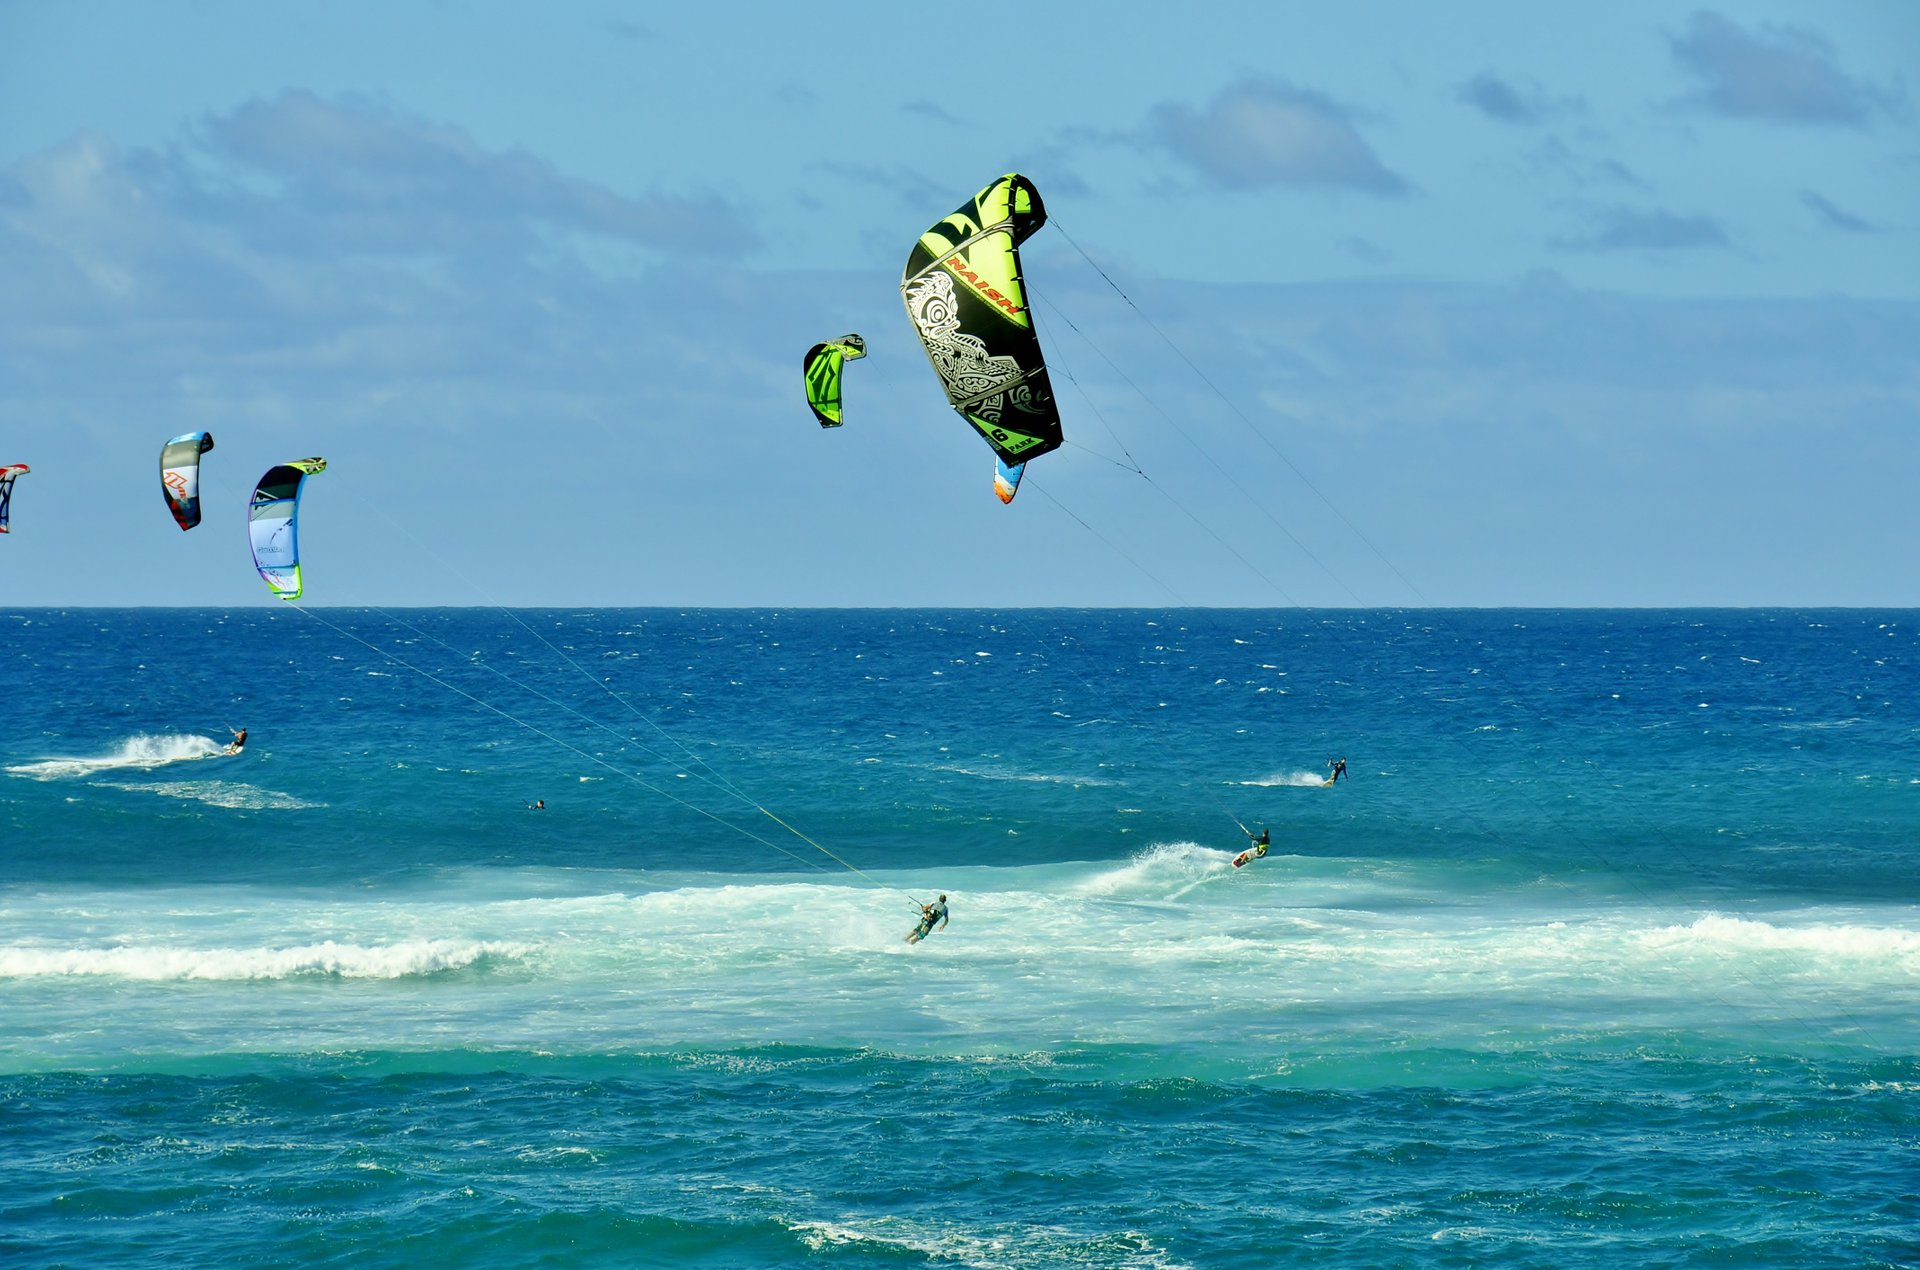 Kitesurfing and Windsurfing in Hawaii 2020 - Best Time